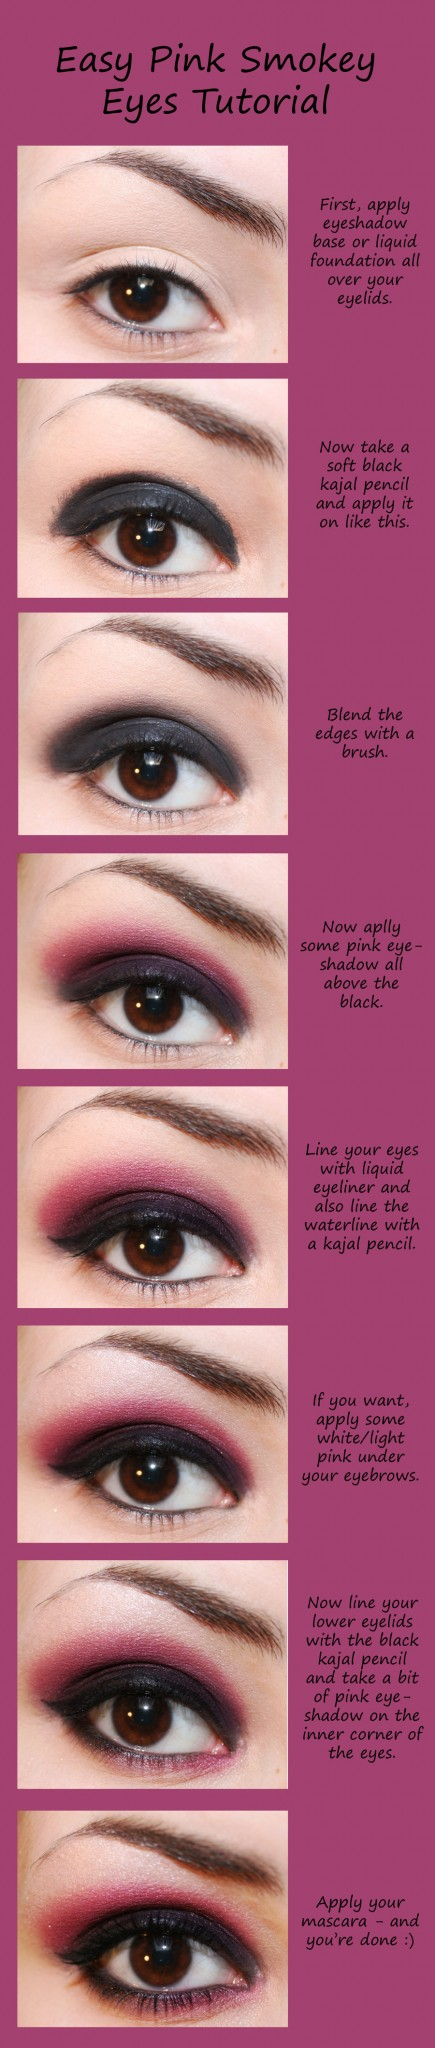 Best Bridal Makeup Tutorials : Best Eye Makeup Tutorials Everyday And Bridal Prom And ...